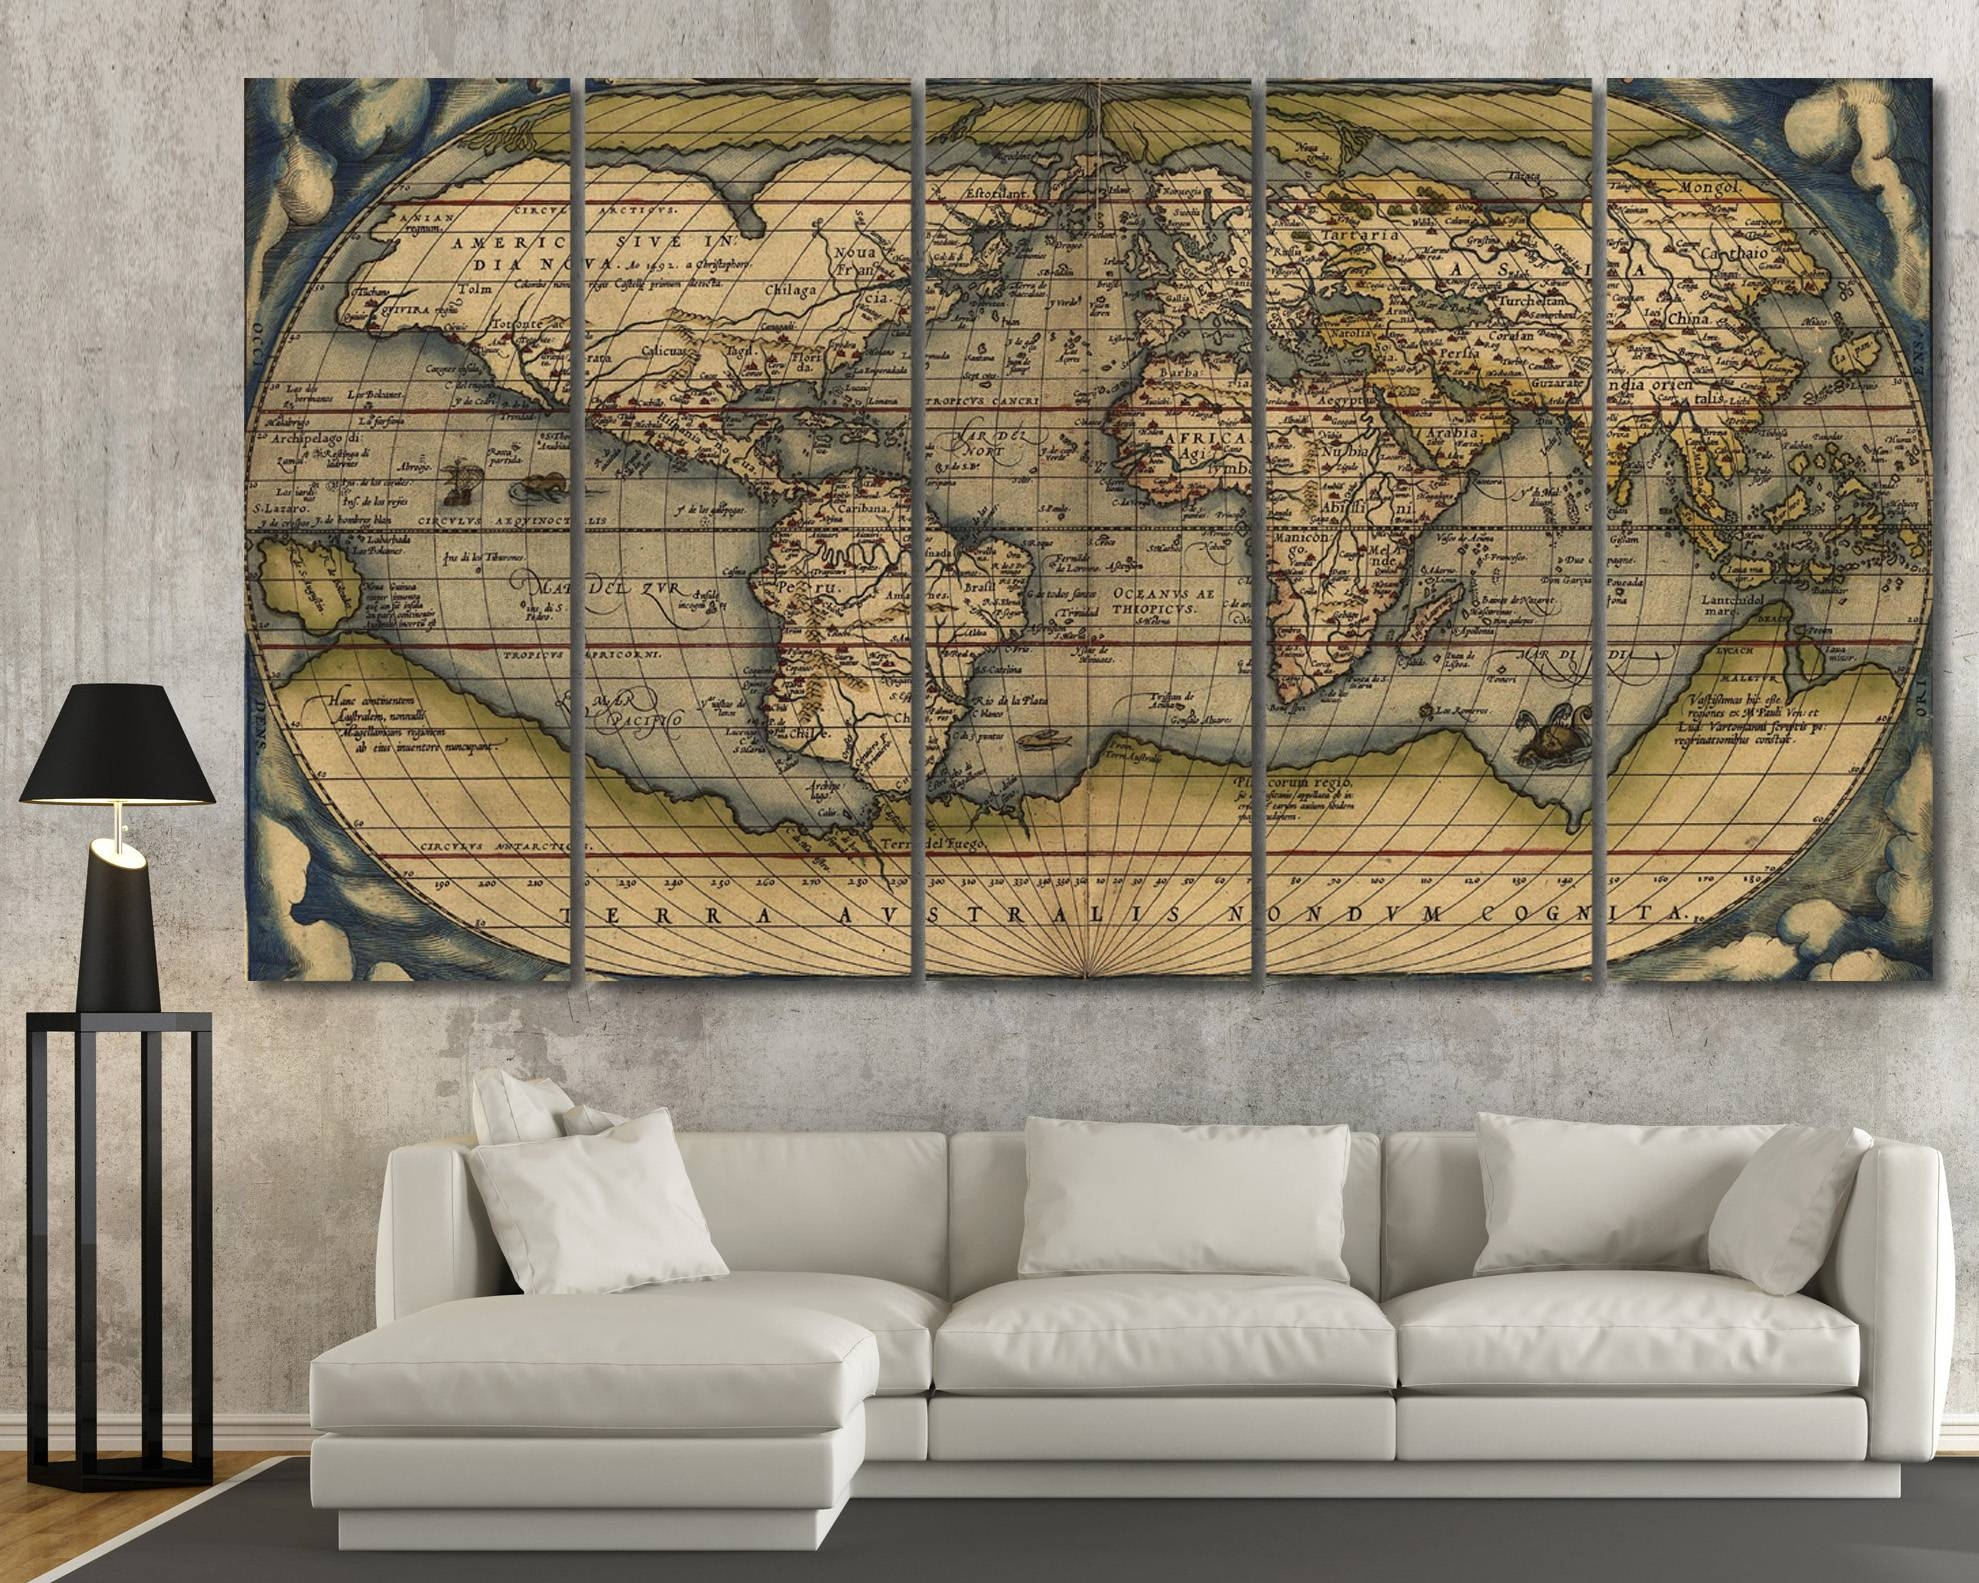 Large Vintage Wall Art Old World Map At Texelprintart Inside Most Up To Date World Wall Art (View 10 of 20)